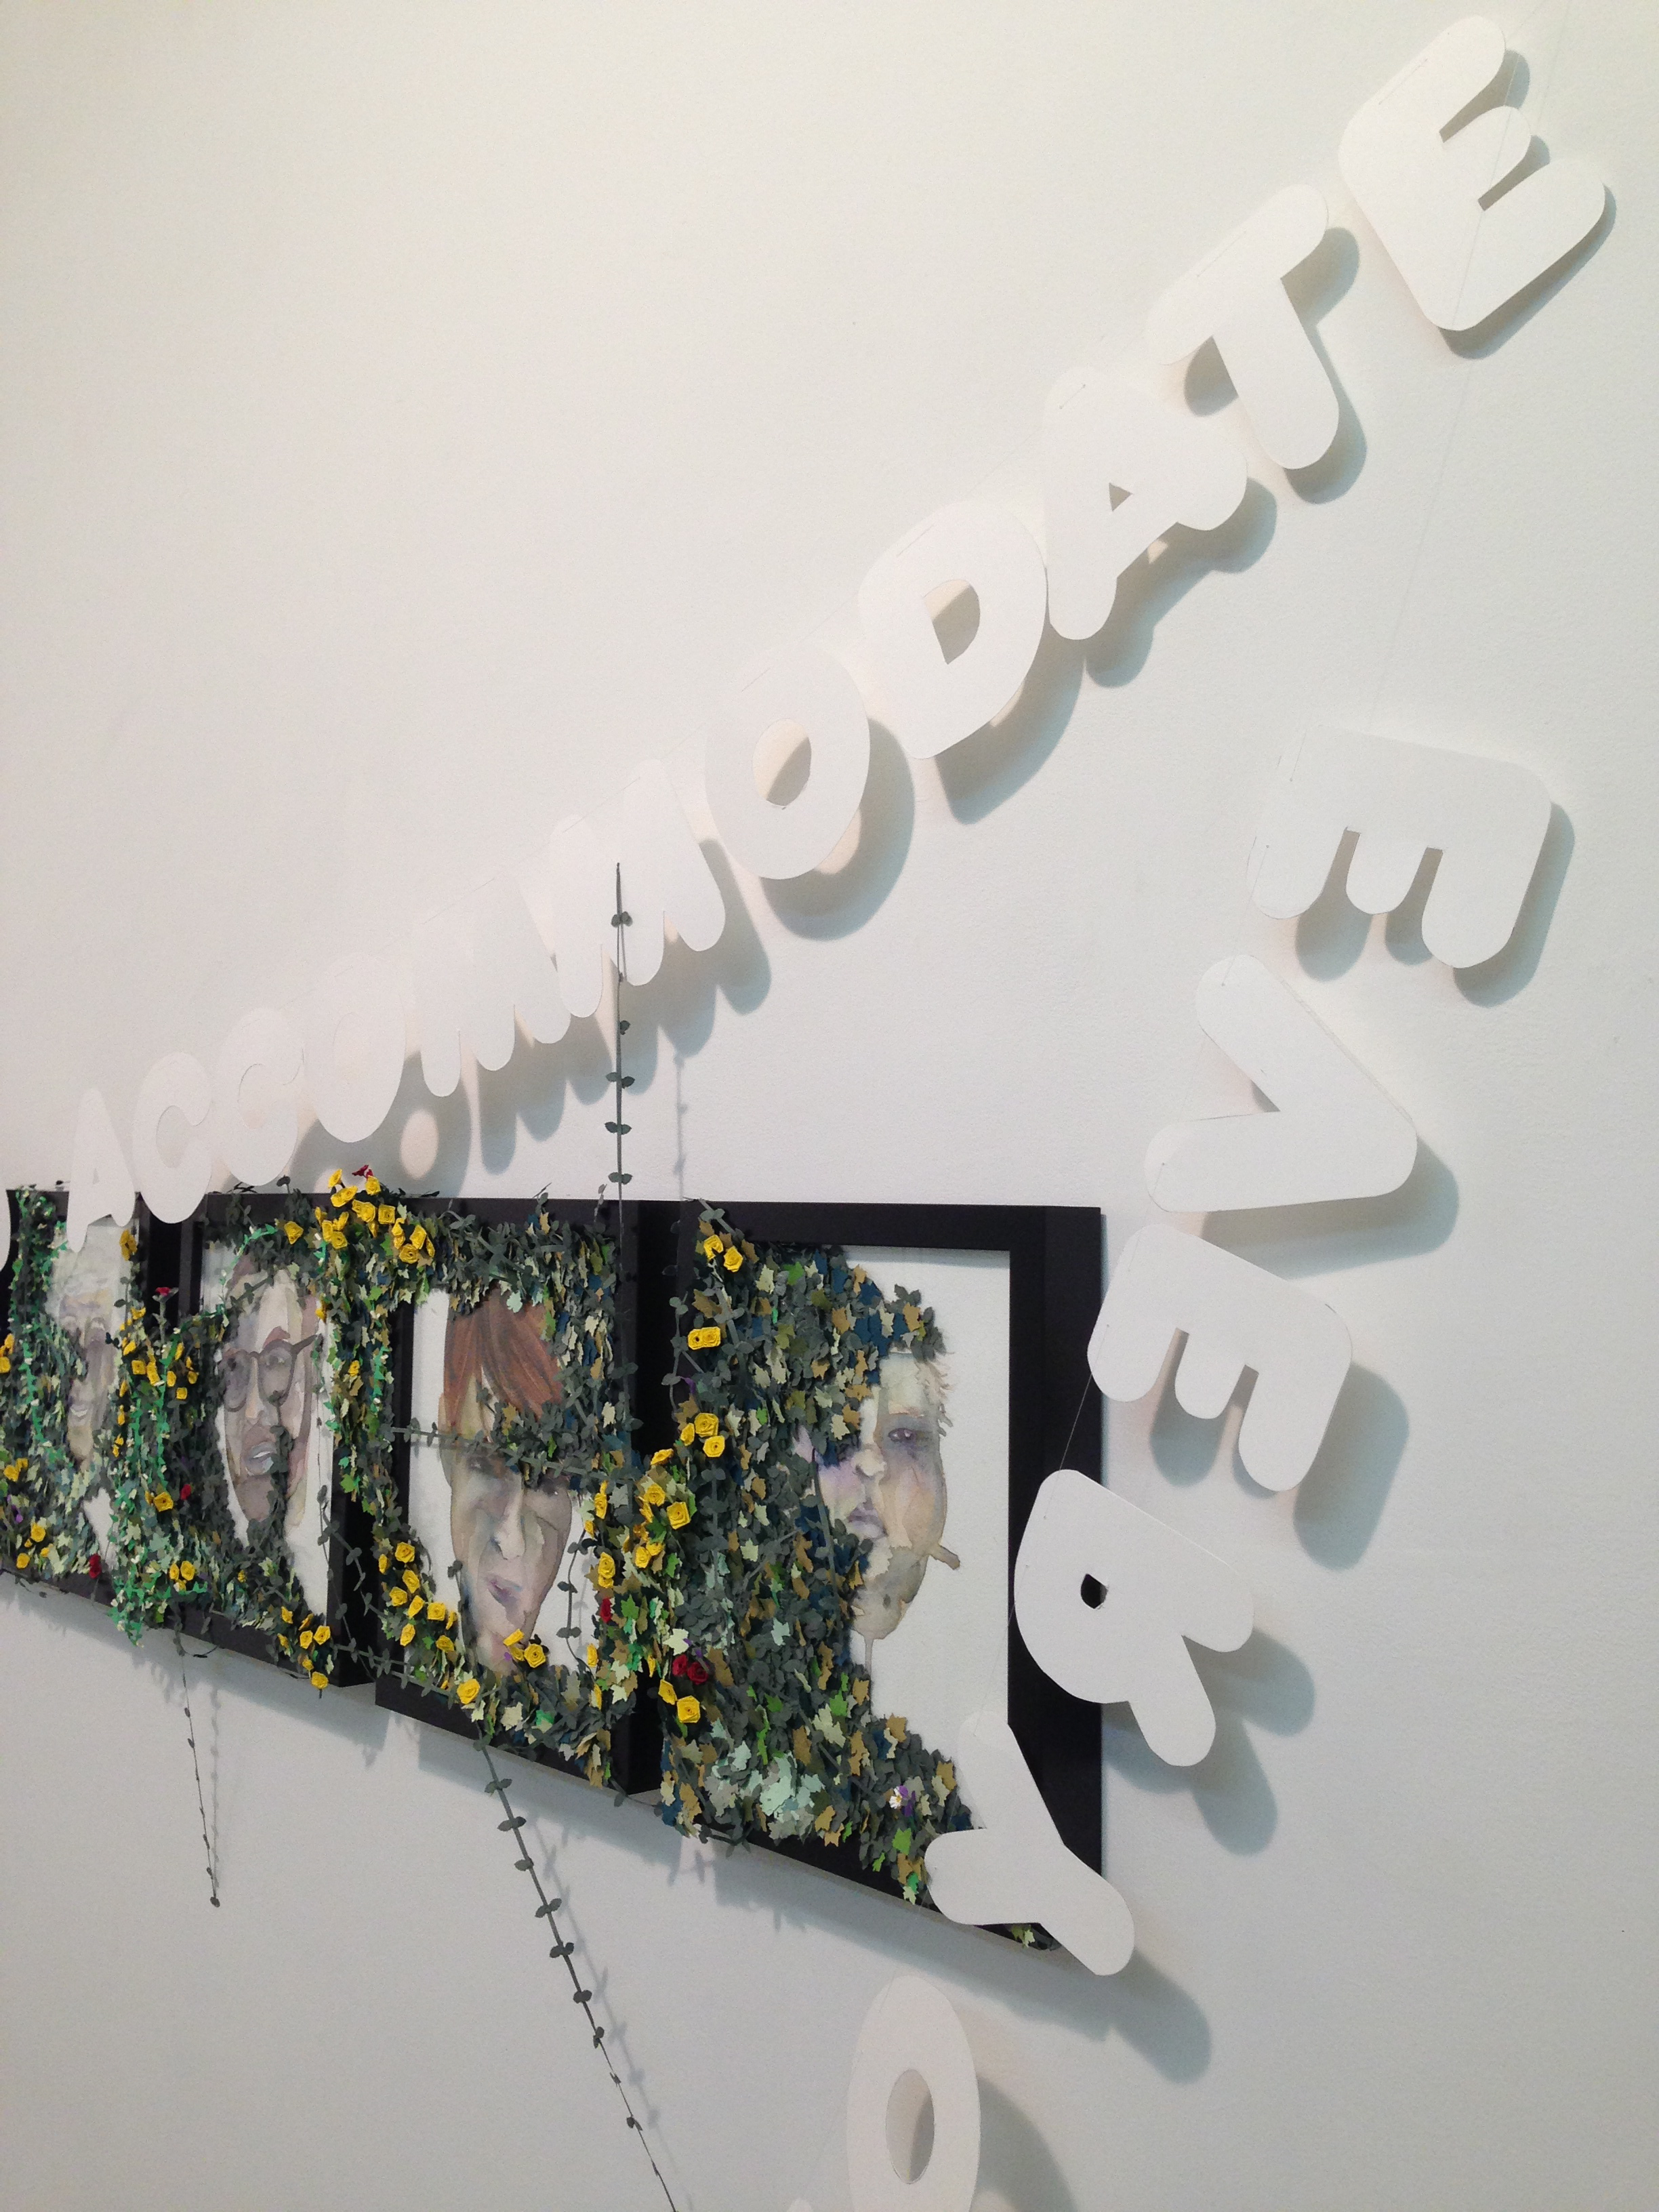 Impossible to Accommodate (detail), 2013